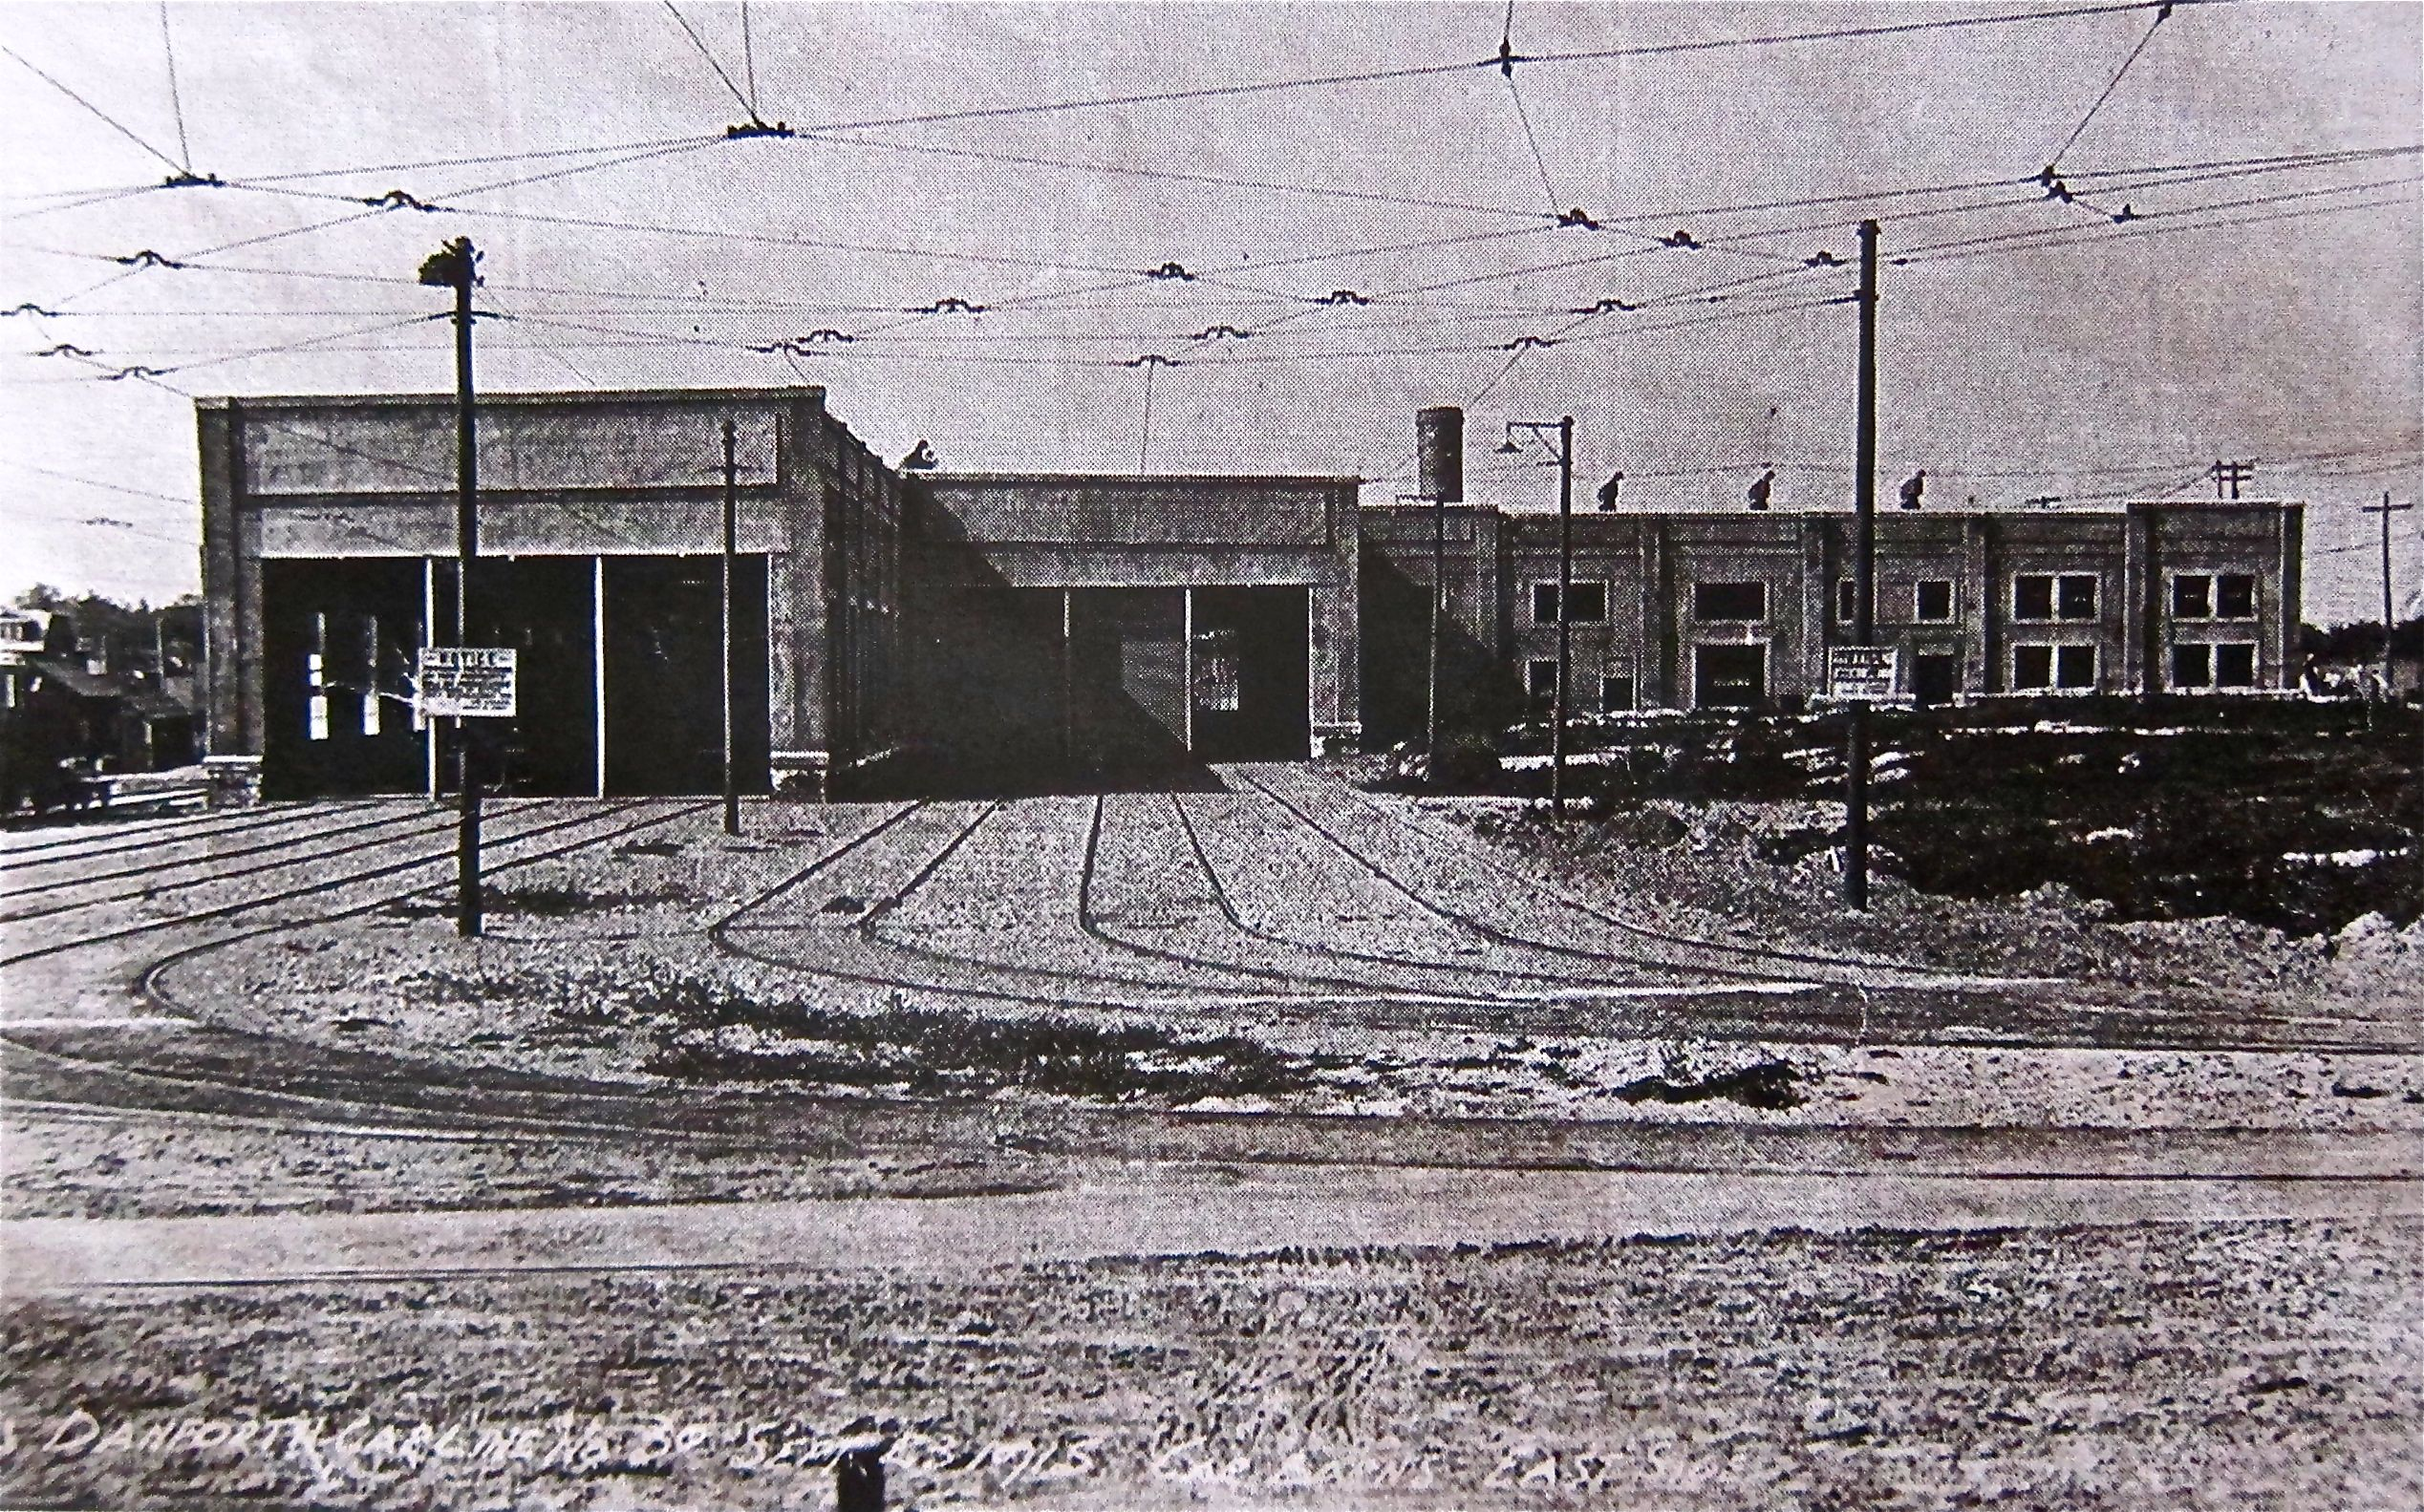 Danforth Carhouse on its opening day, Sept. 23, 1915. Nearly 1,000 TTC employees worked out of the facility at its peak. It was converted to a bus garage in 1967.